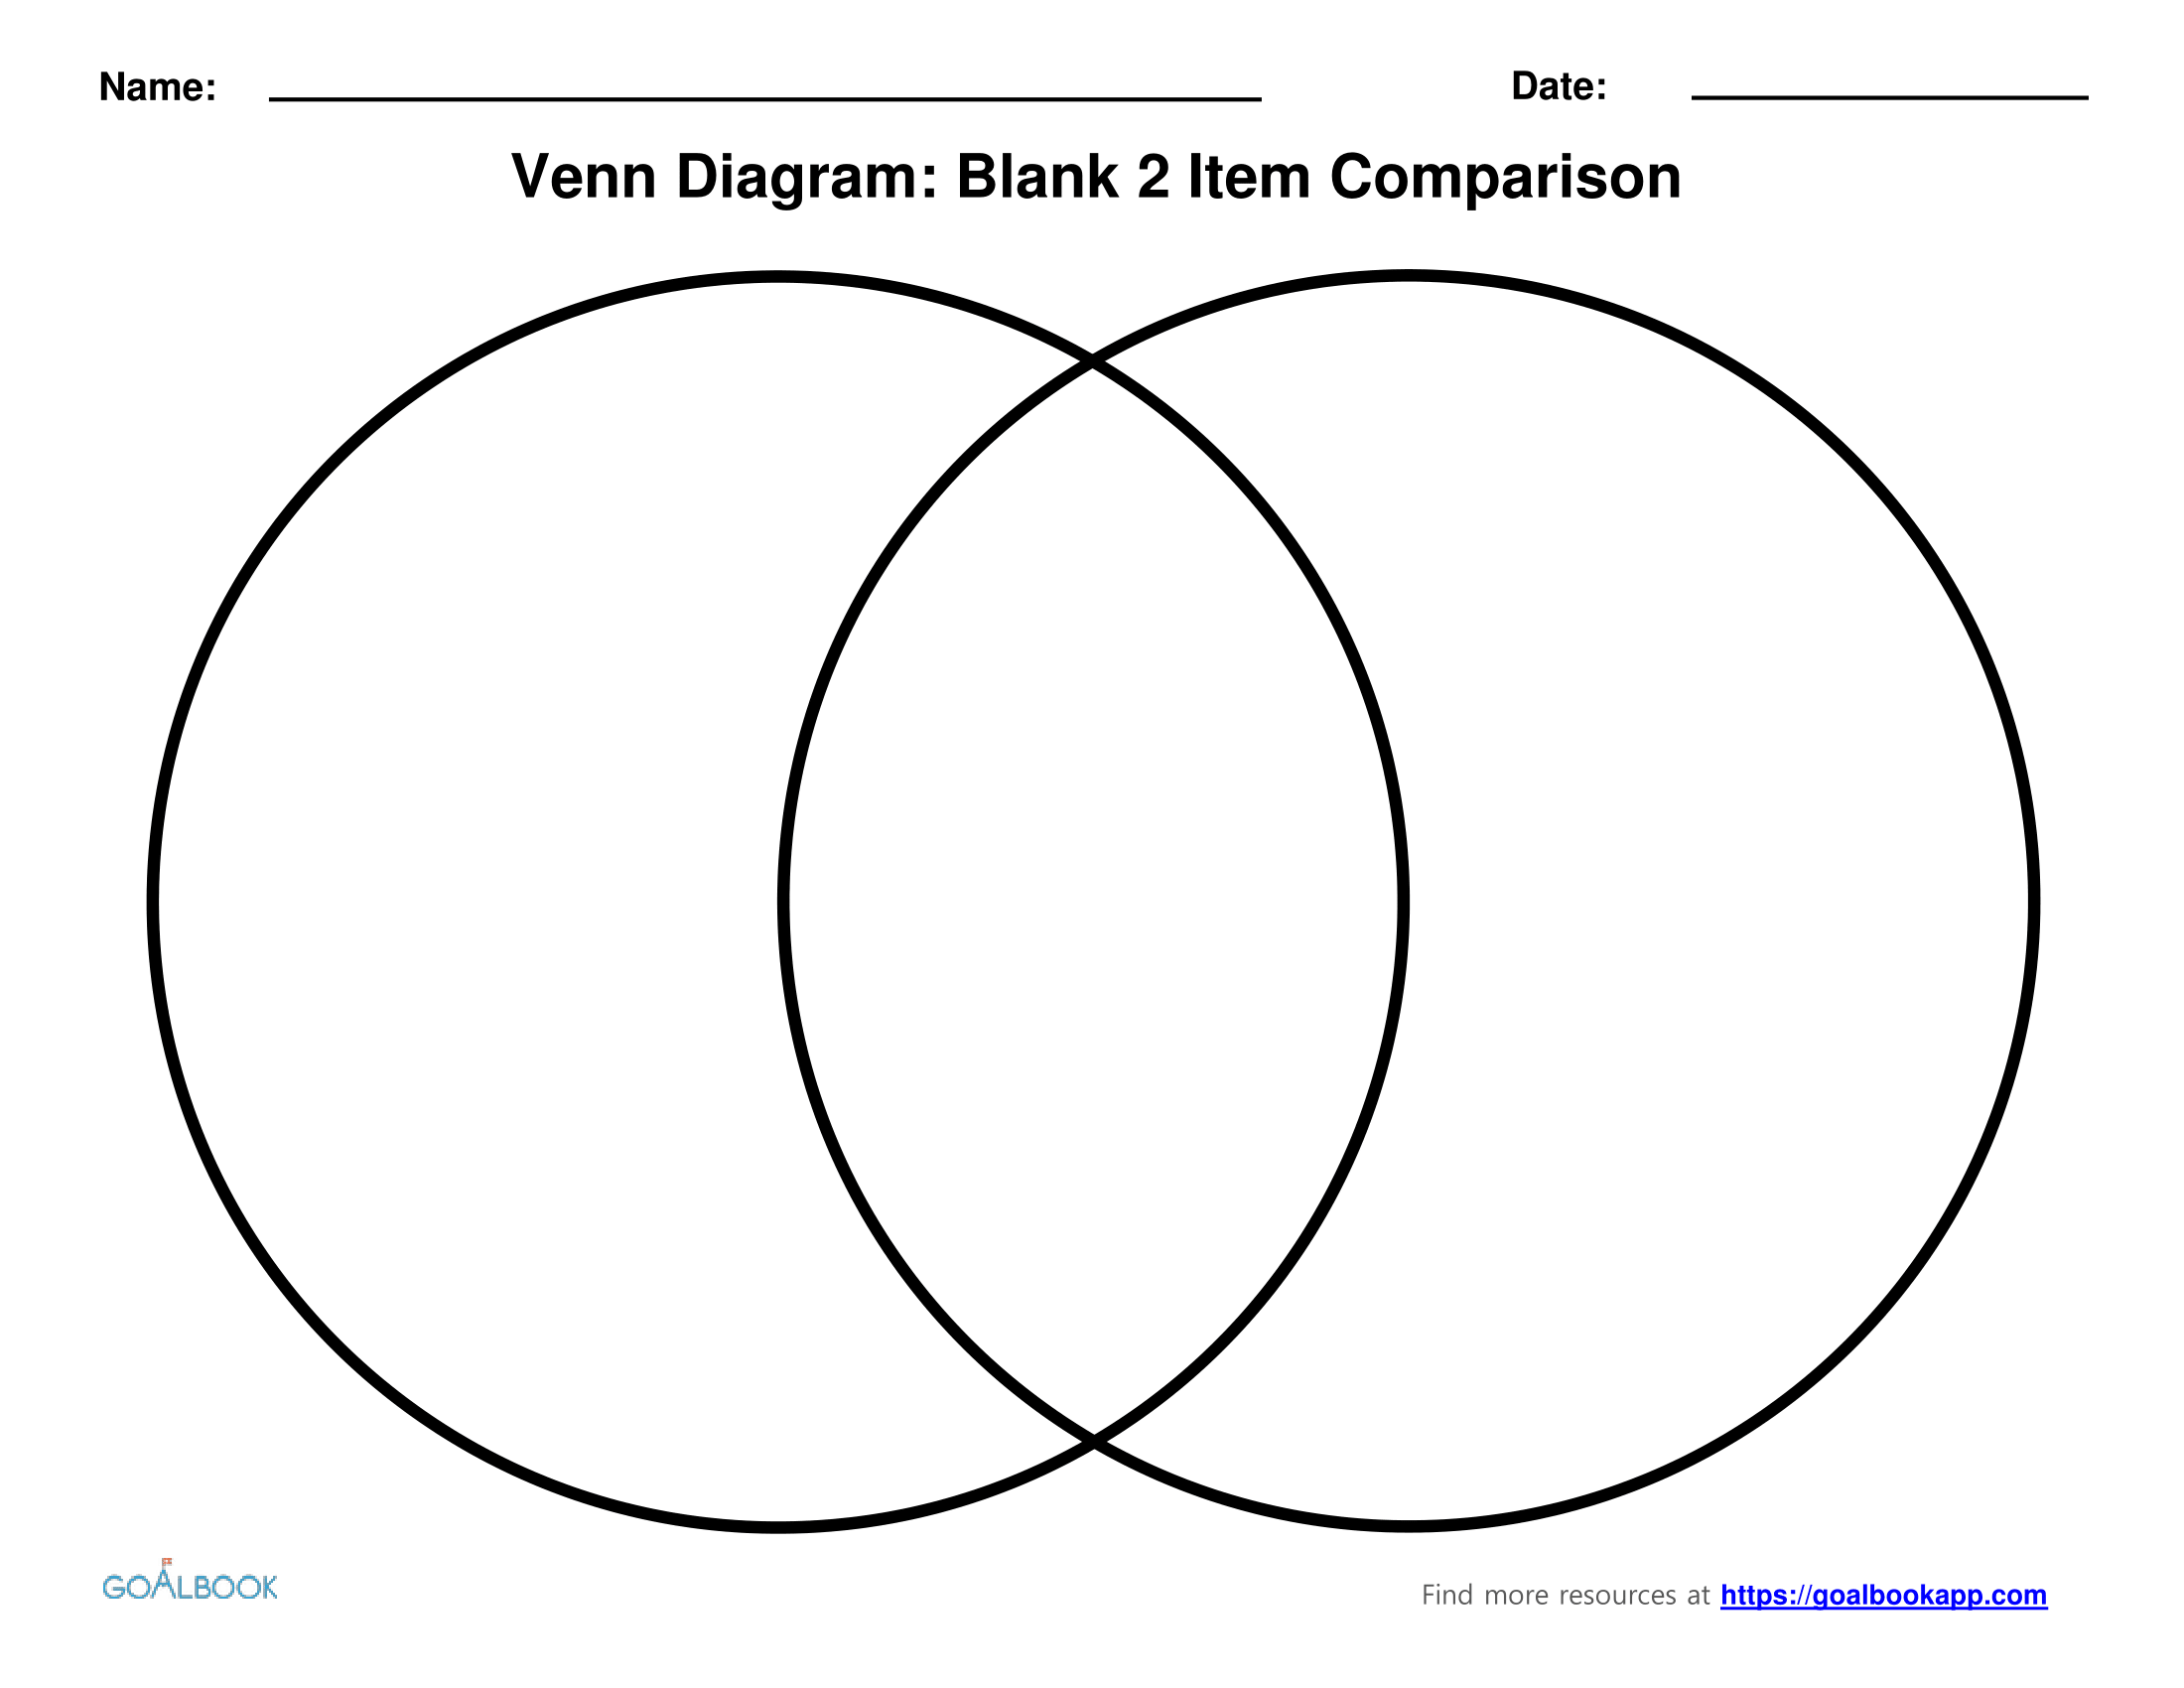 Venn diagram udl strategies 2 circle venn diagrams pooptronica Gallery